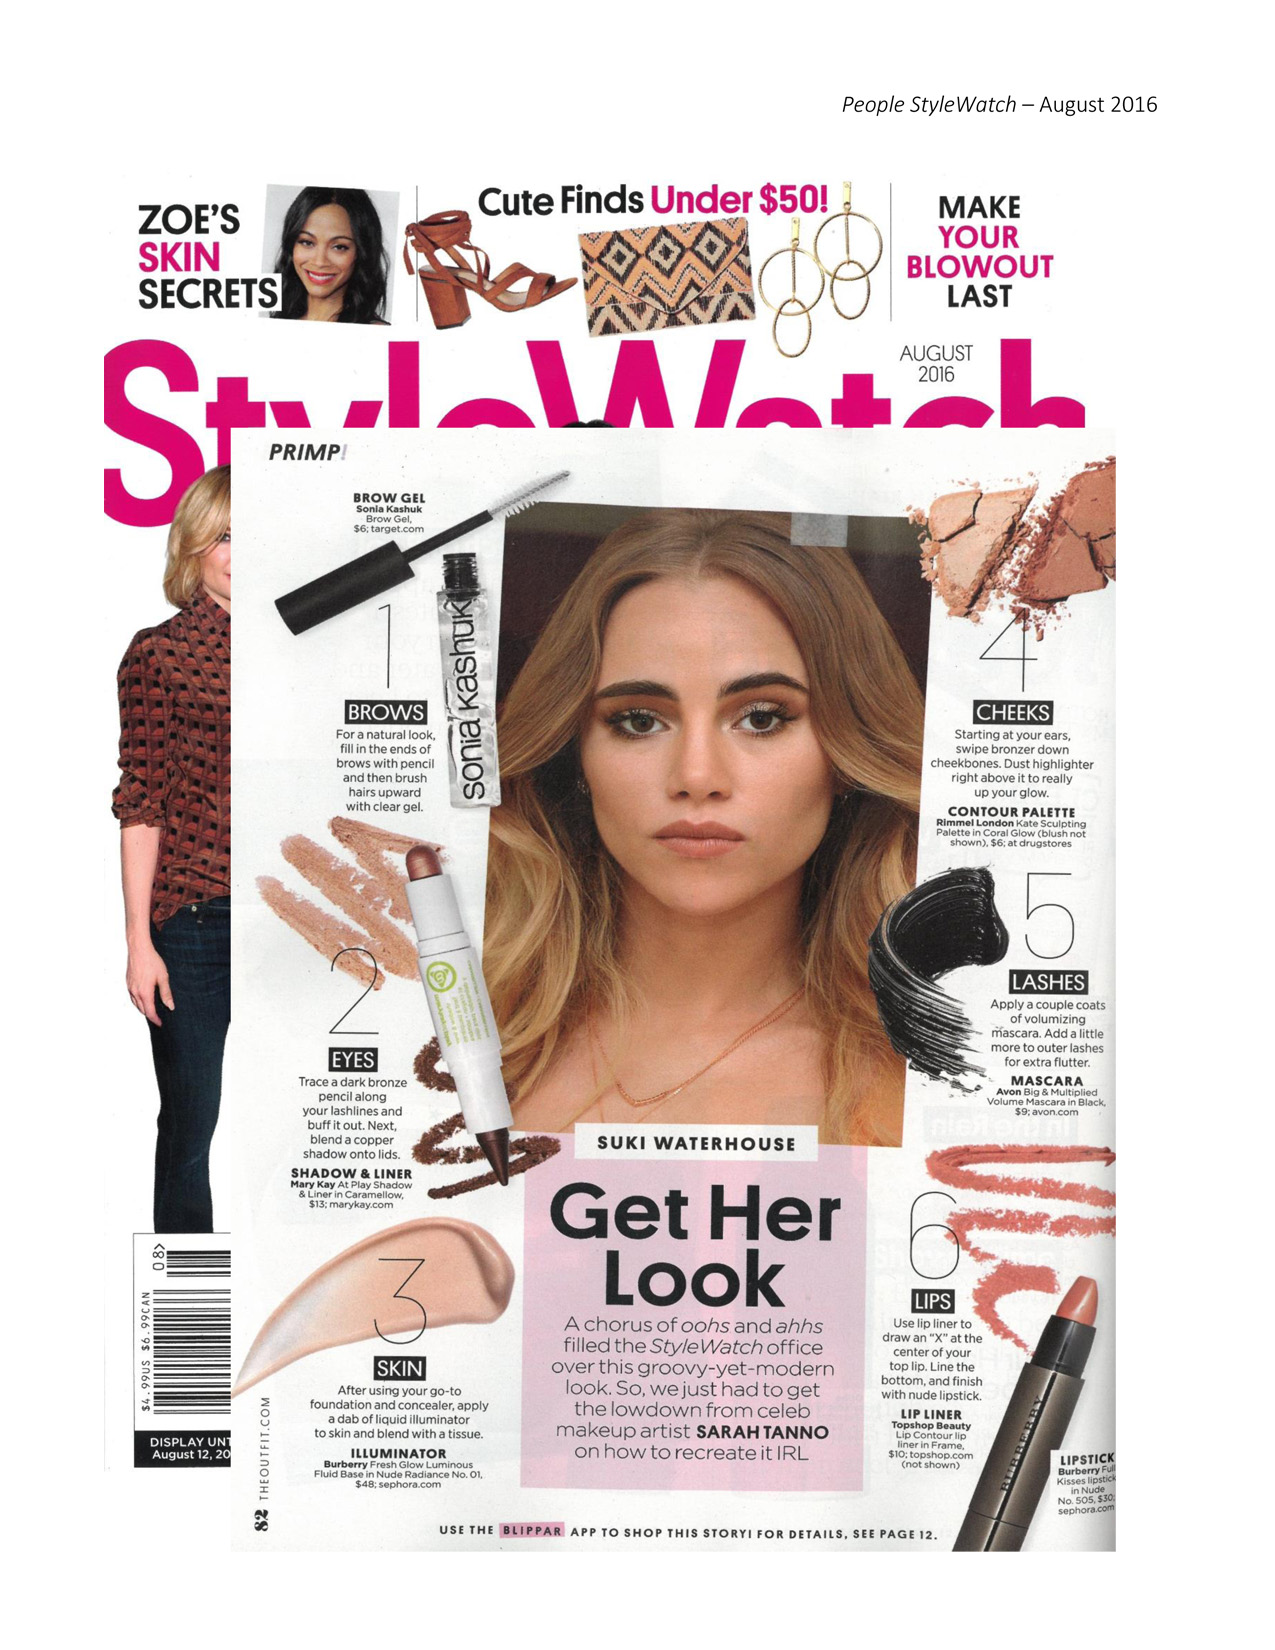 People StyleWatch, August 2016